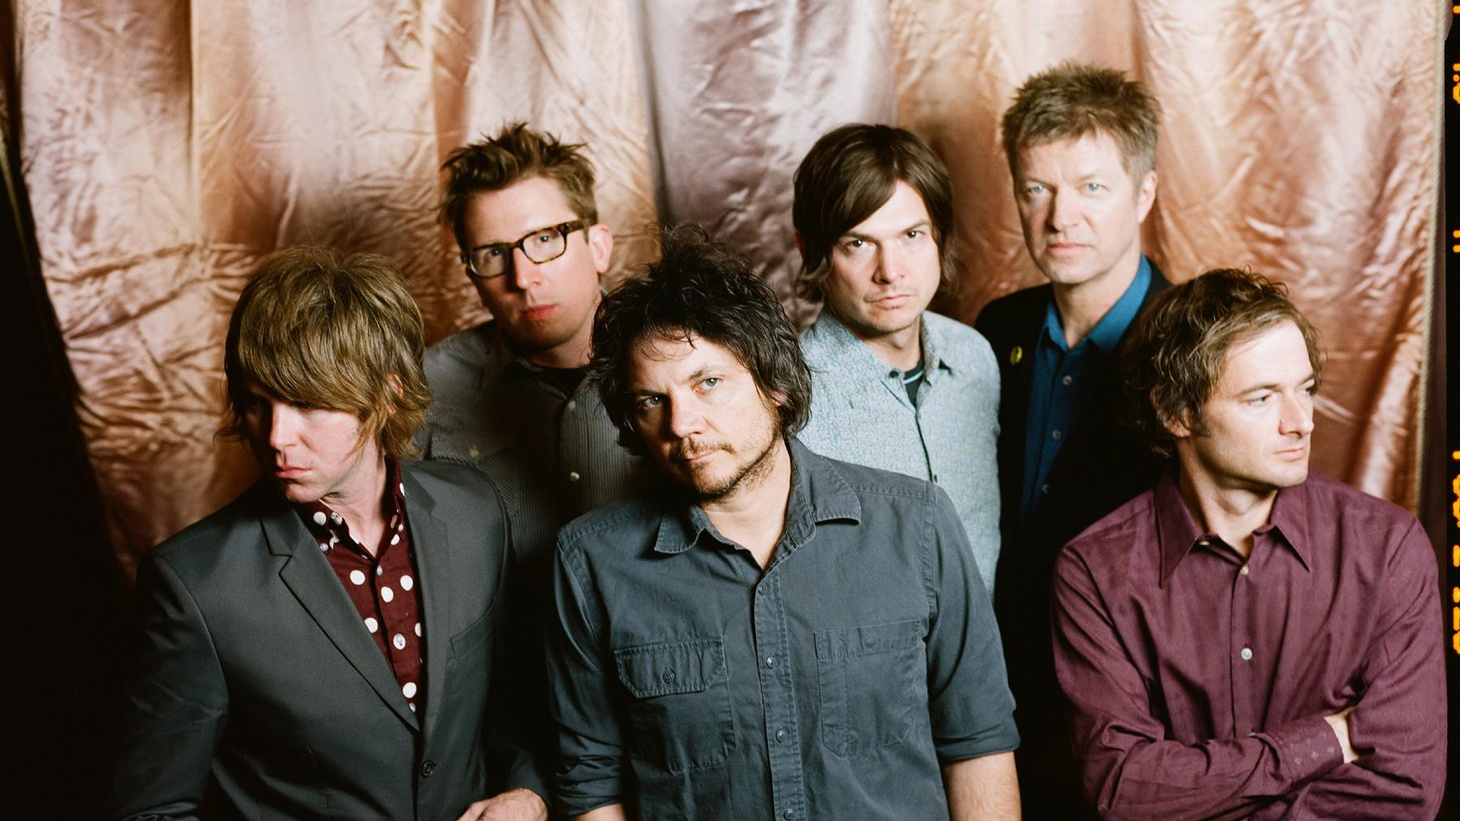 Wilco added to an already impressive catalogue with their latest release, which captures their love of guitar-driven pop rock with songs that flex their musical muscle...